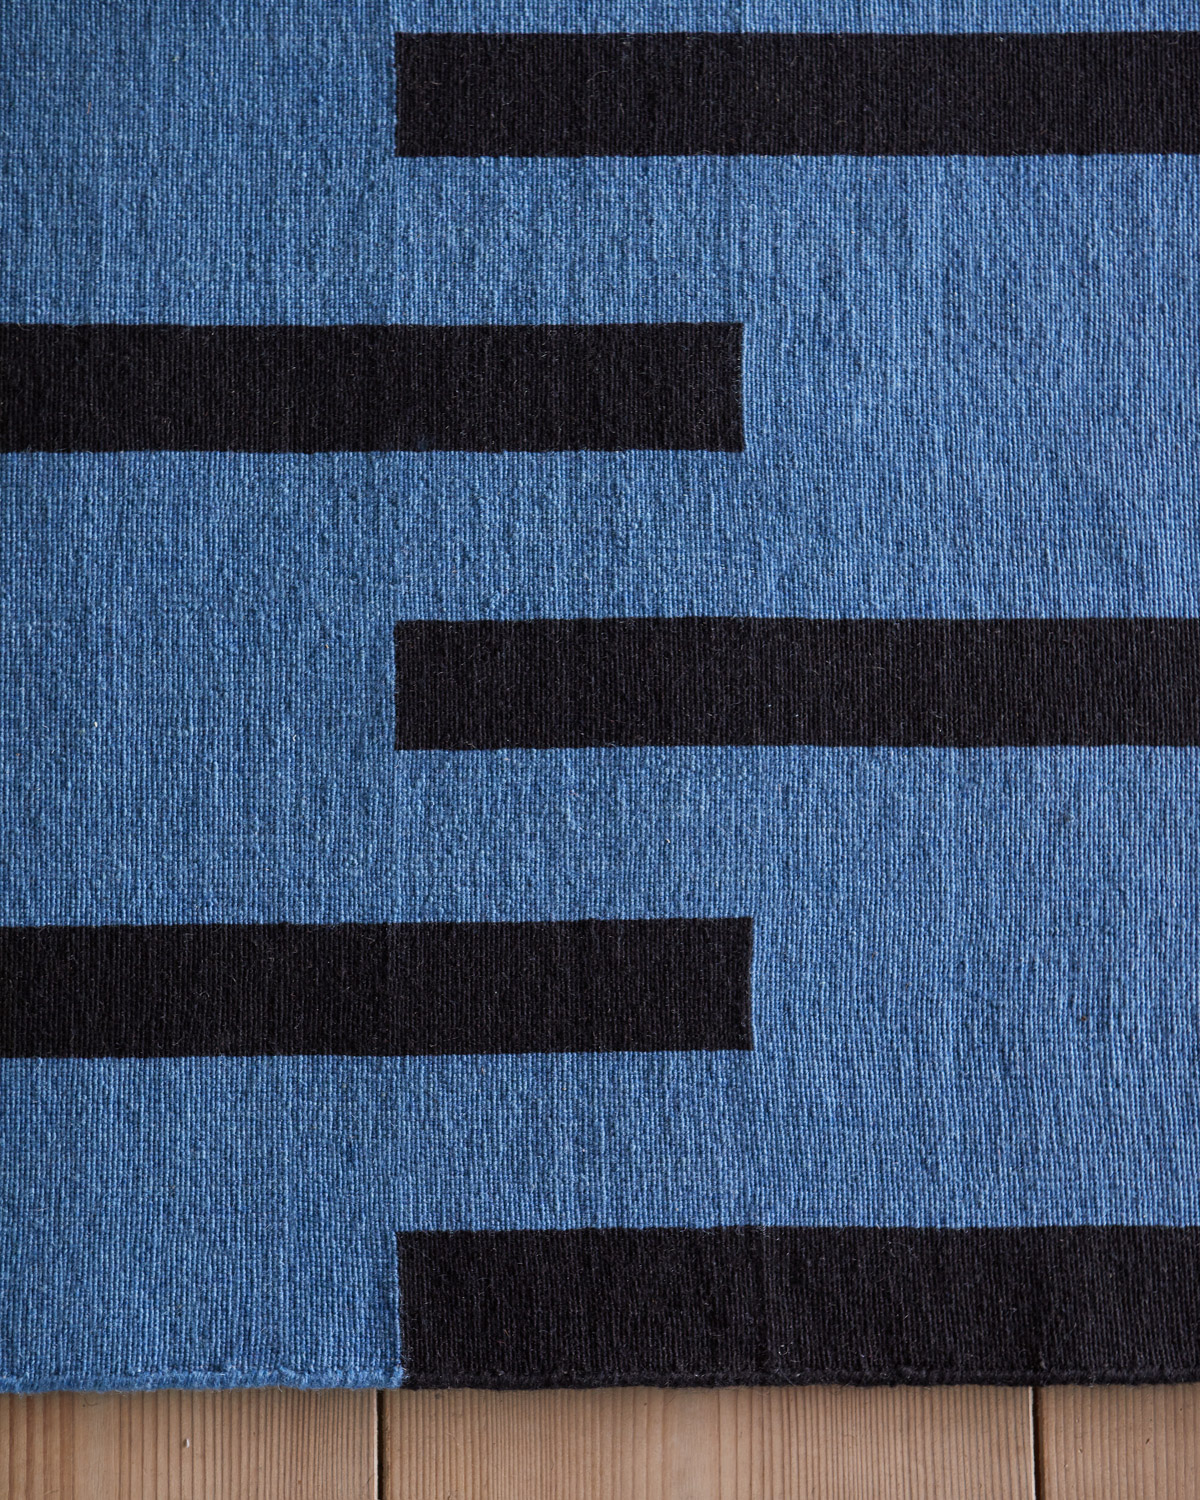 Close up of Tiger in color combination Blue and Black.